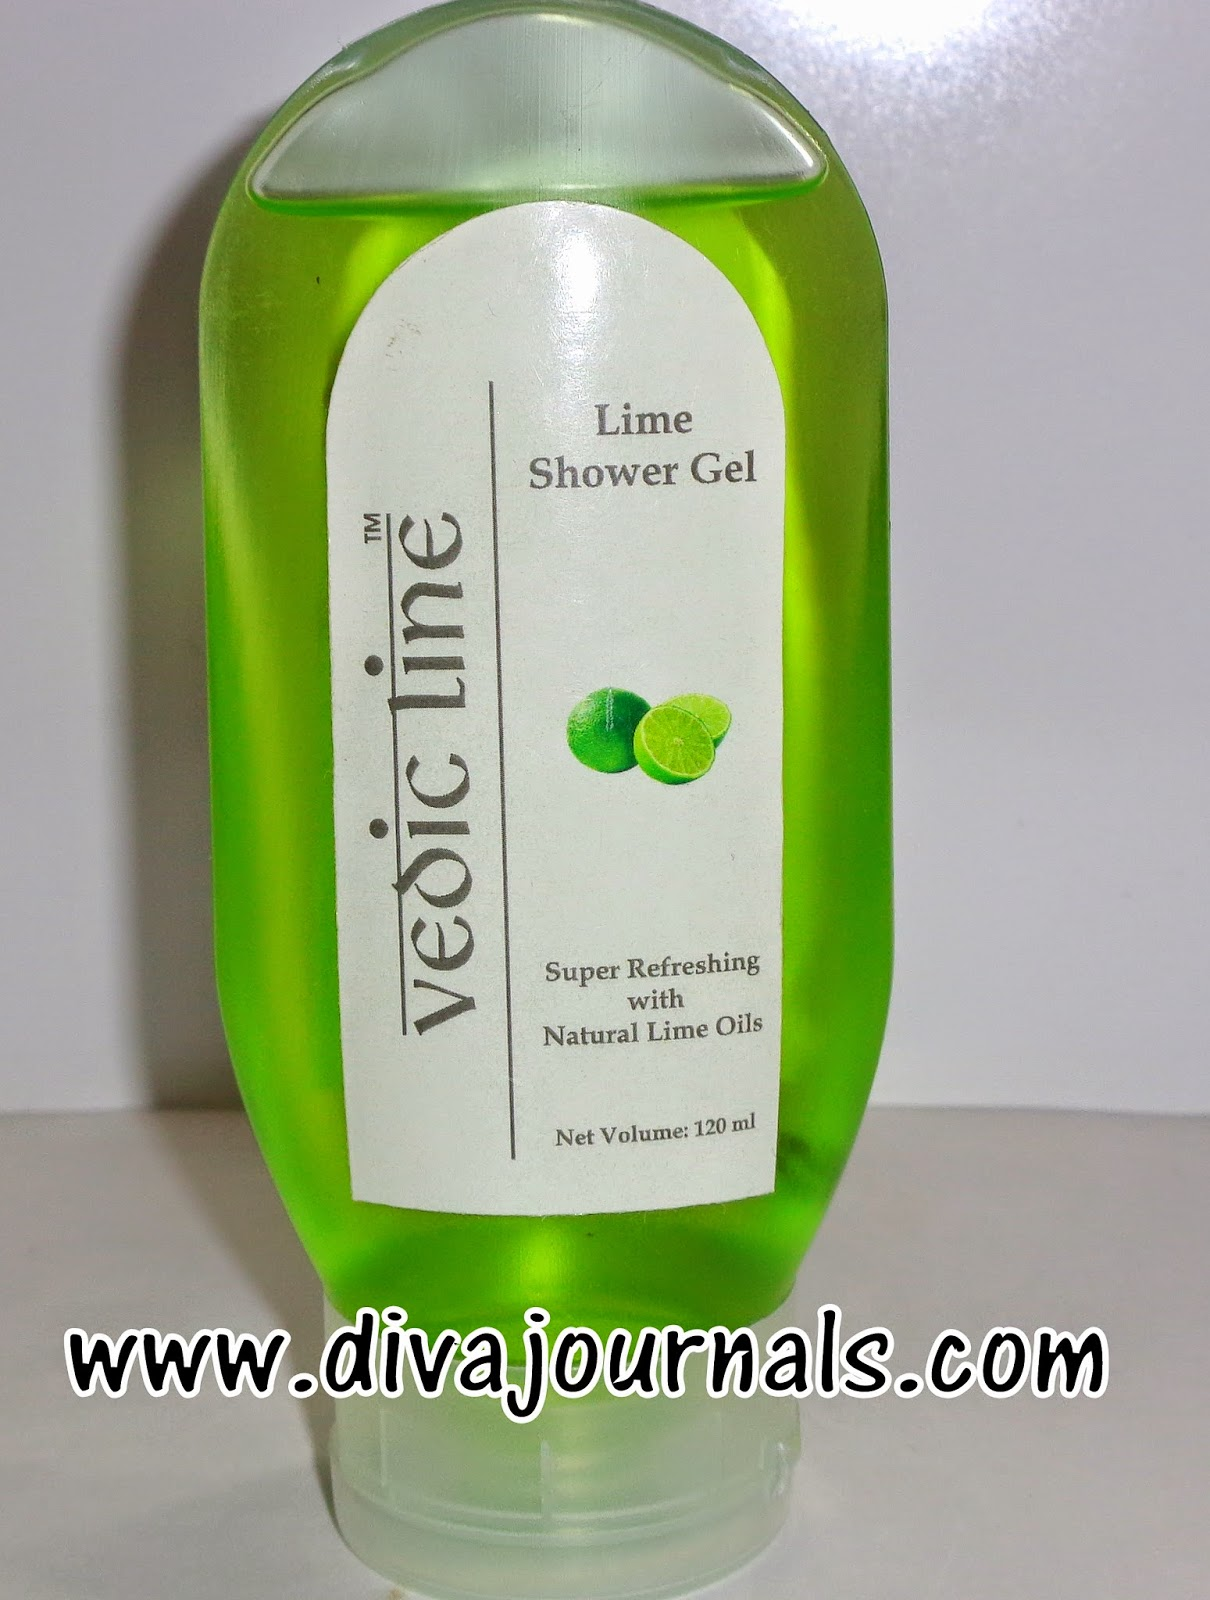 Vedic Line Lime Shower Gel Review